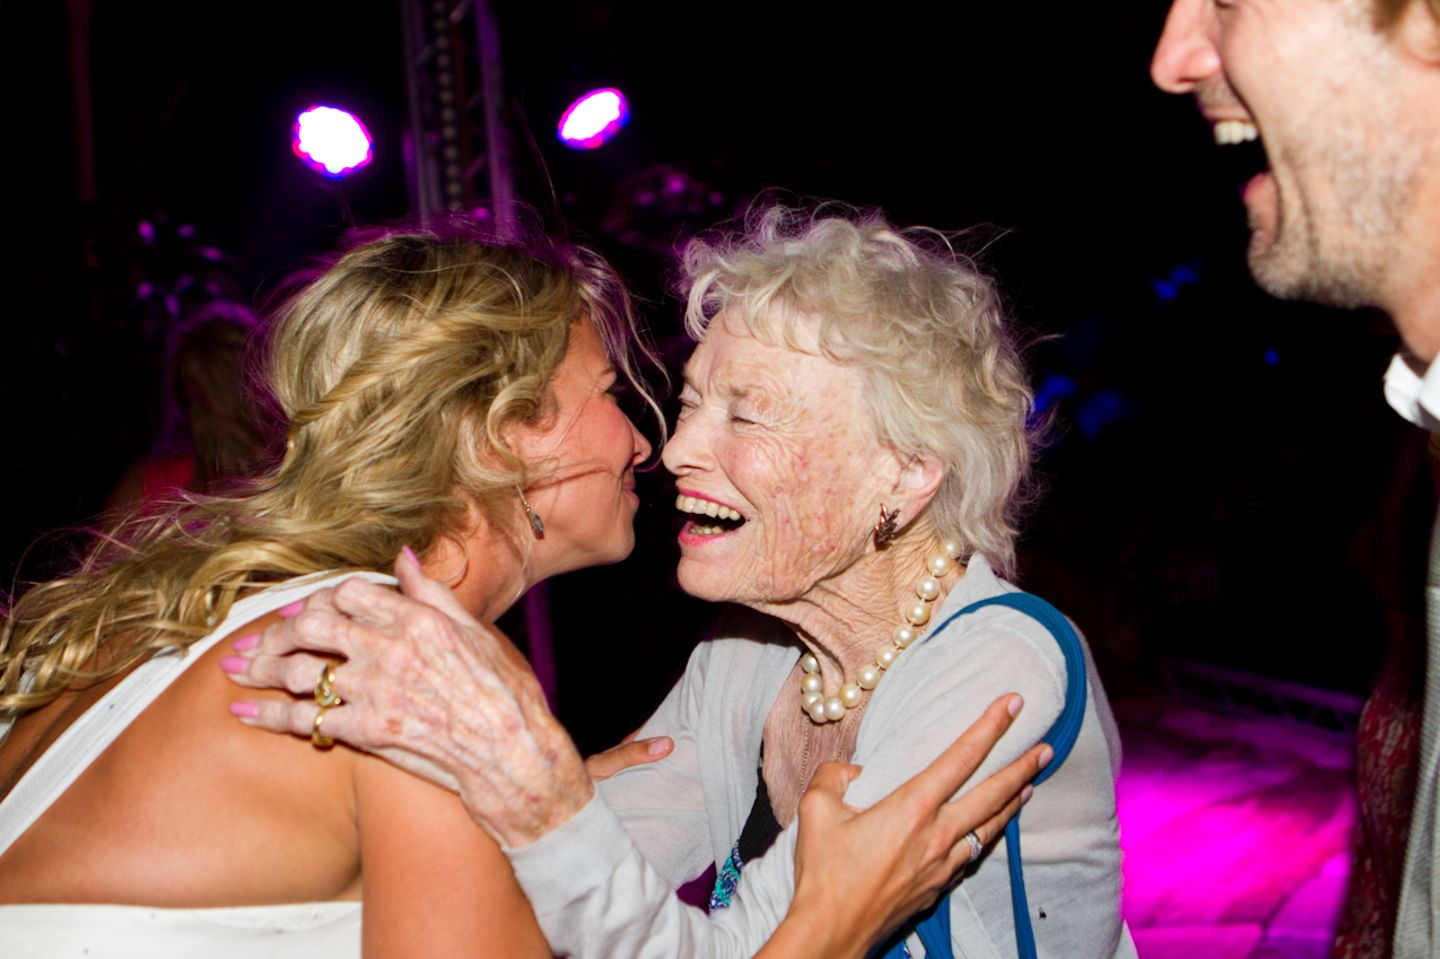 Eve Branson and Holly Branson dancing and smiling at Holly's wedding